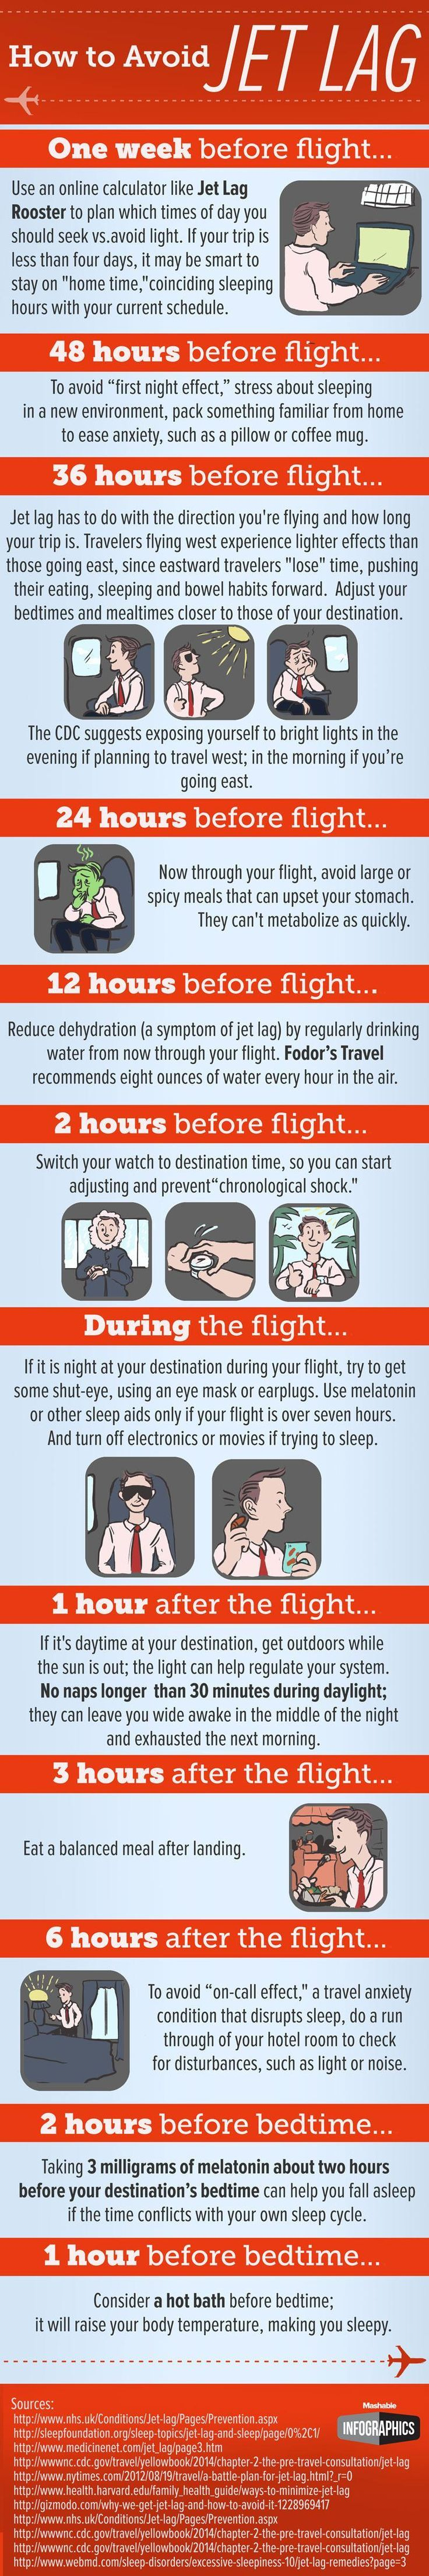 Don't let jet lag get the best of you.